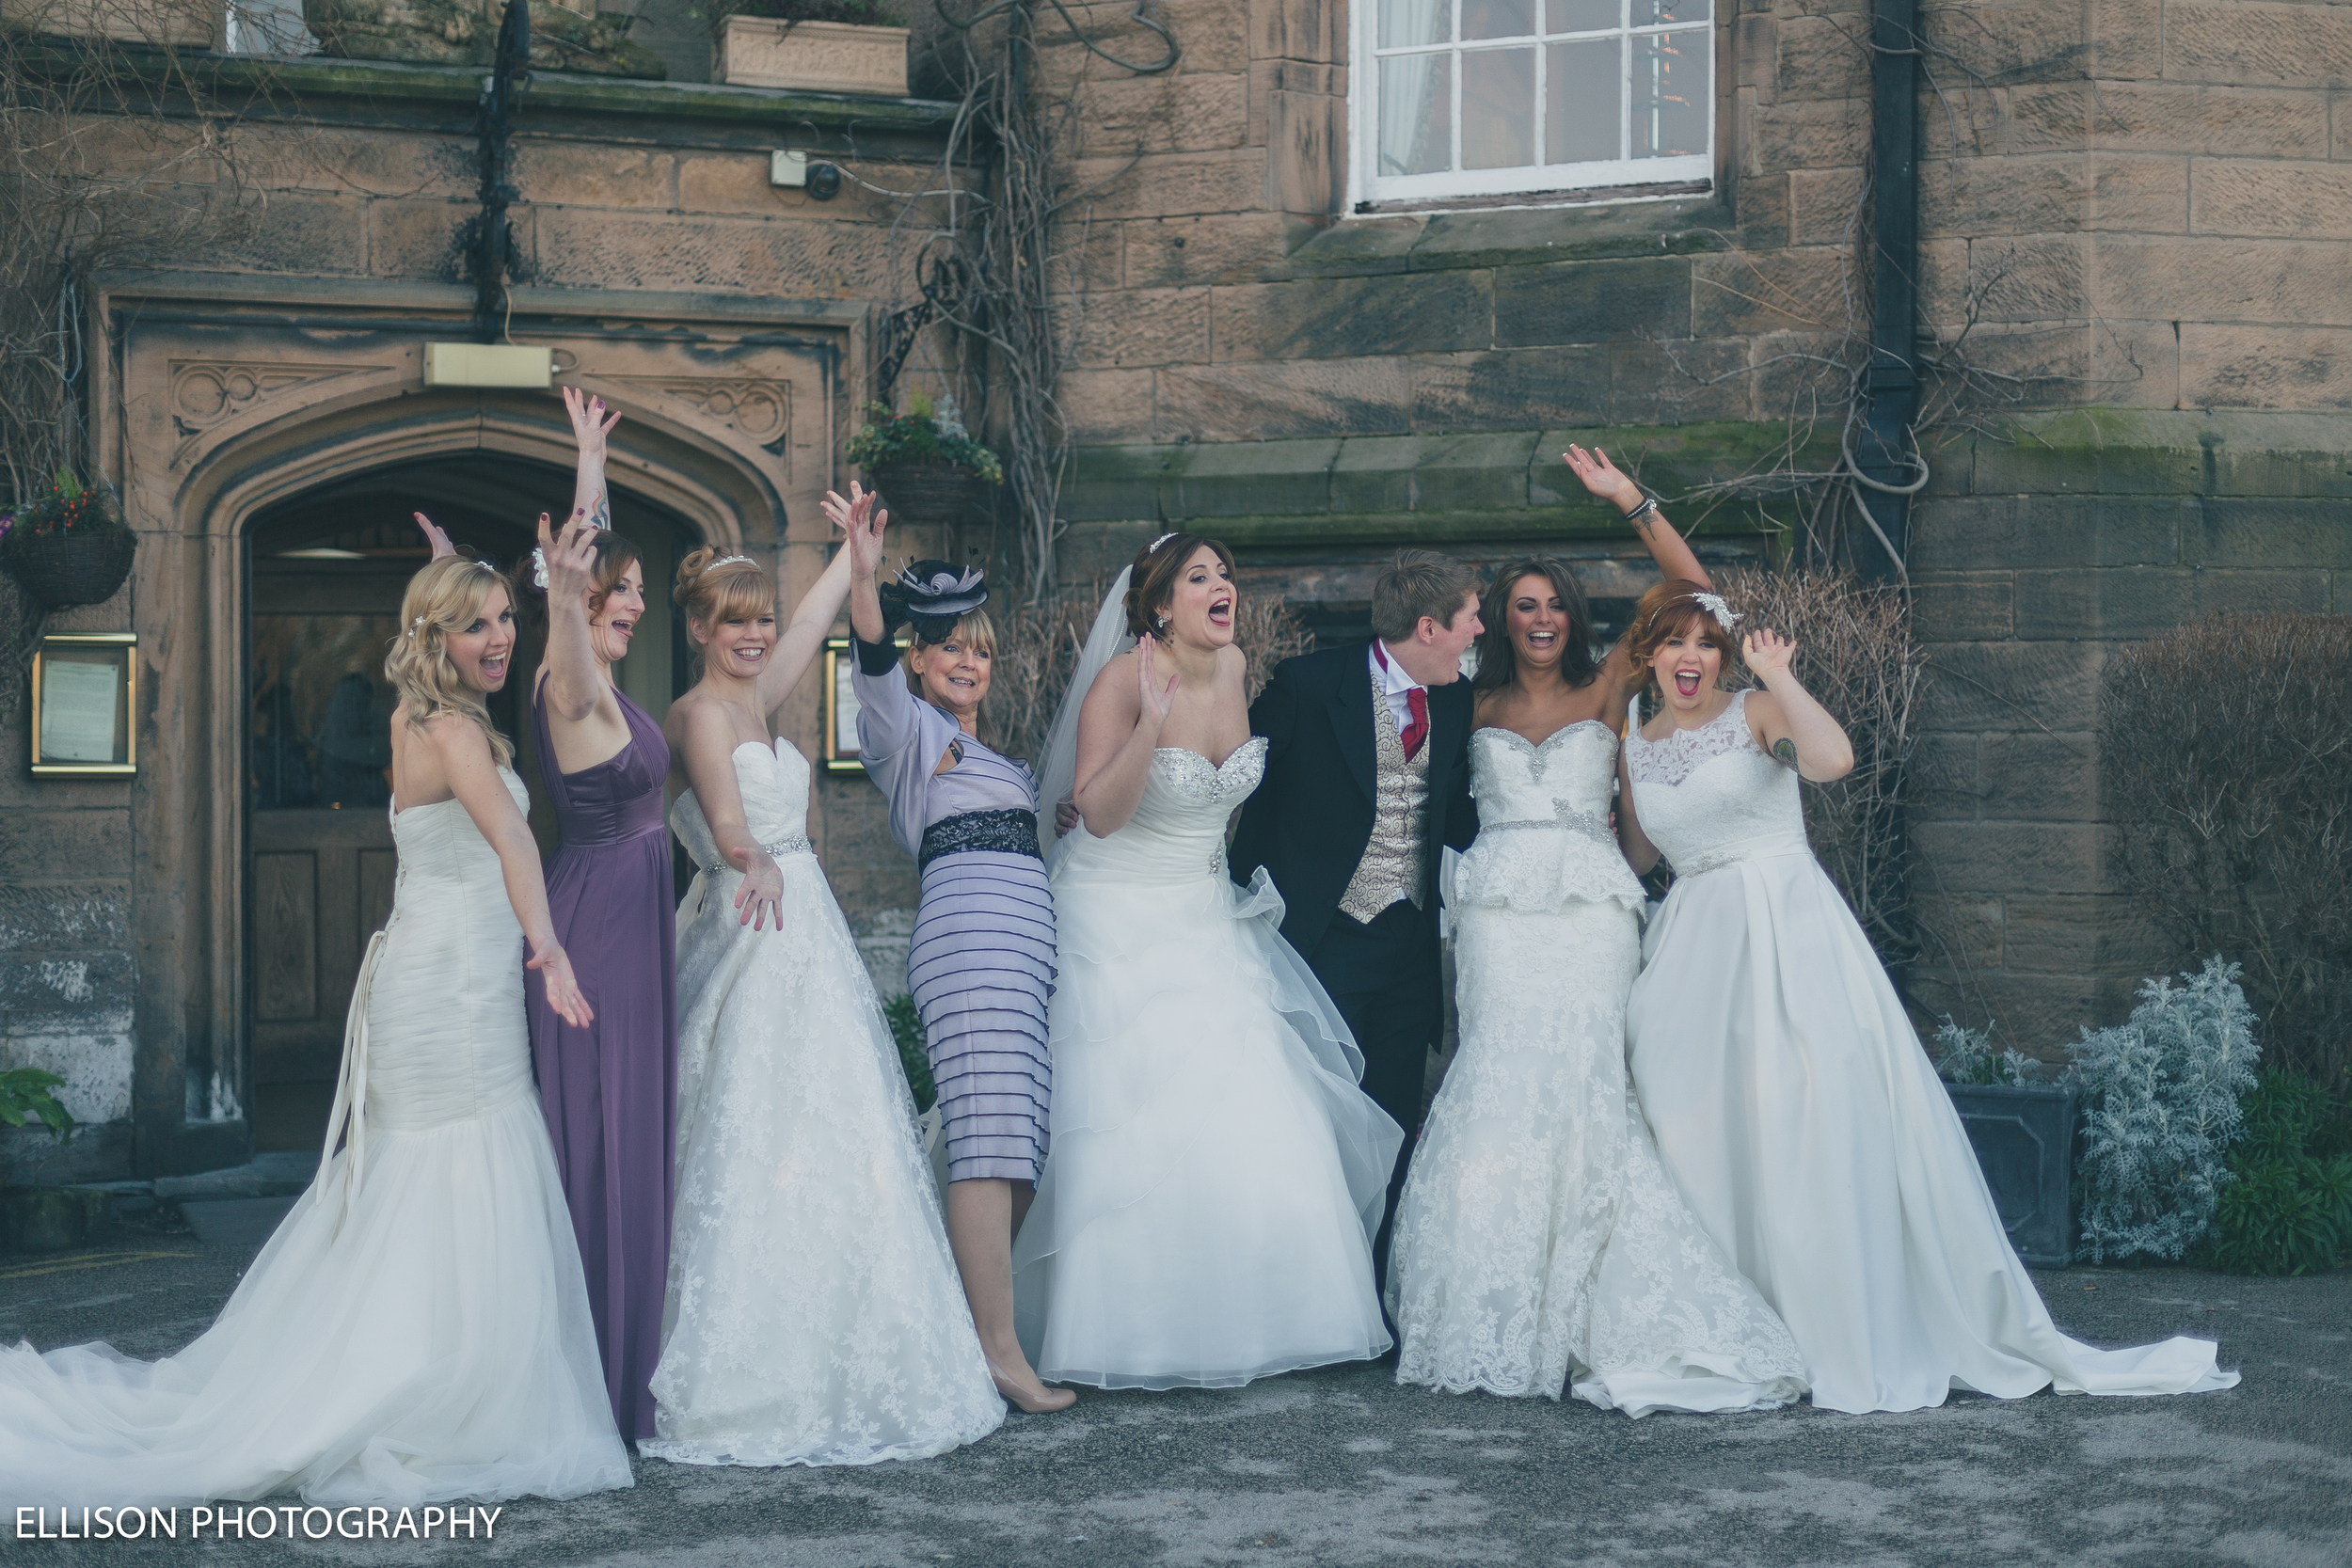 Brides Leasowe Castle Wedding Fayre Red Event Wirral Sunday 19th January 2014. FB